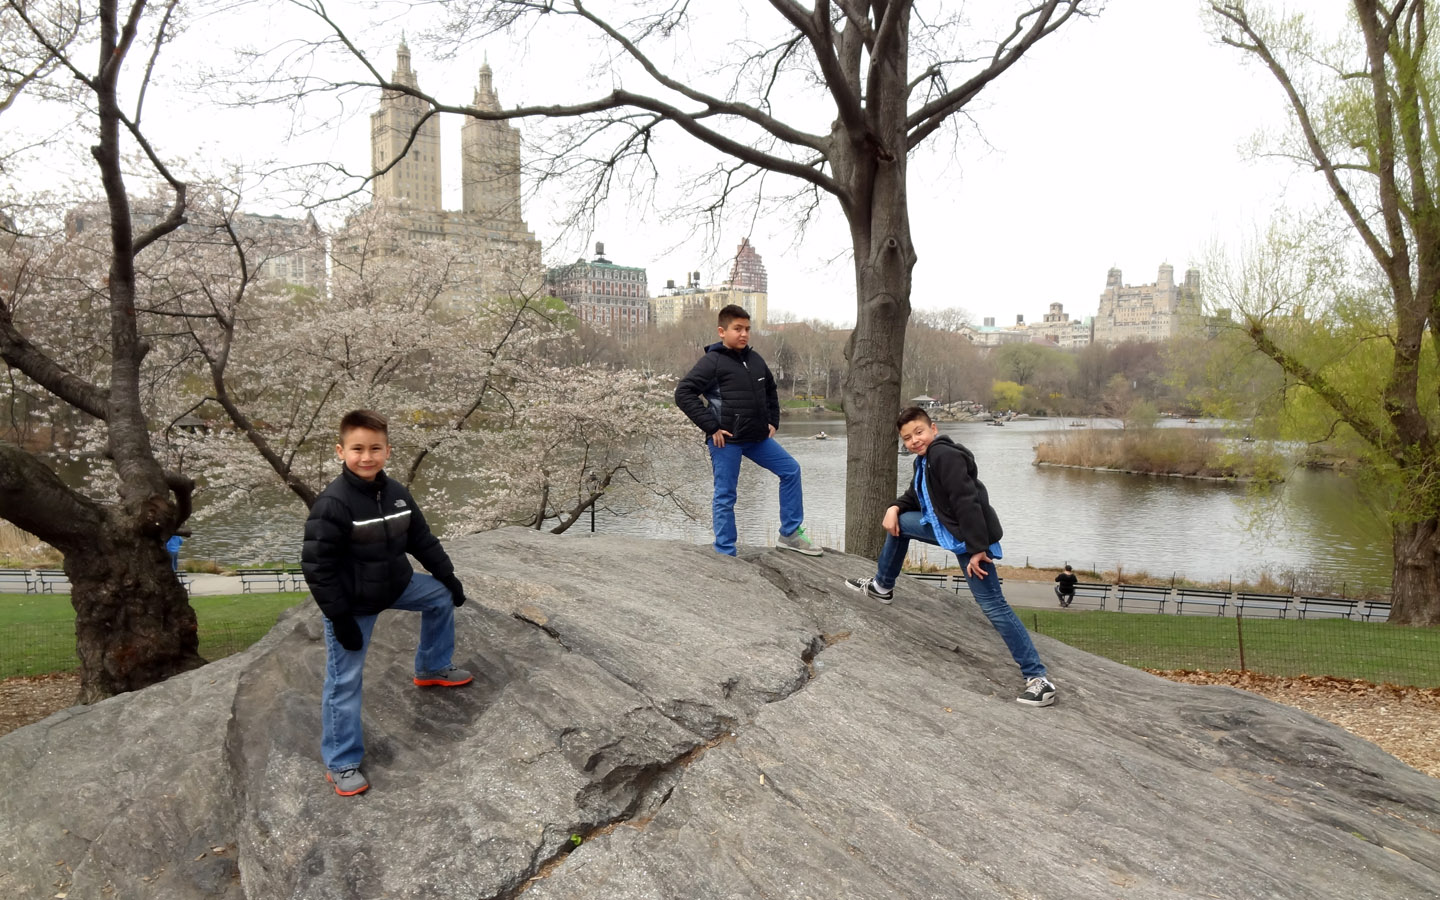 Central Park, New York, USA 2014